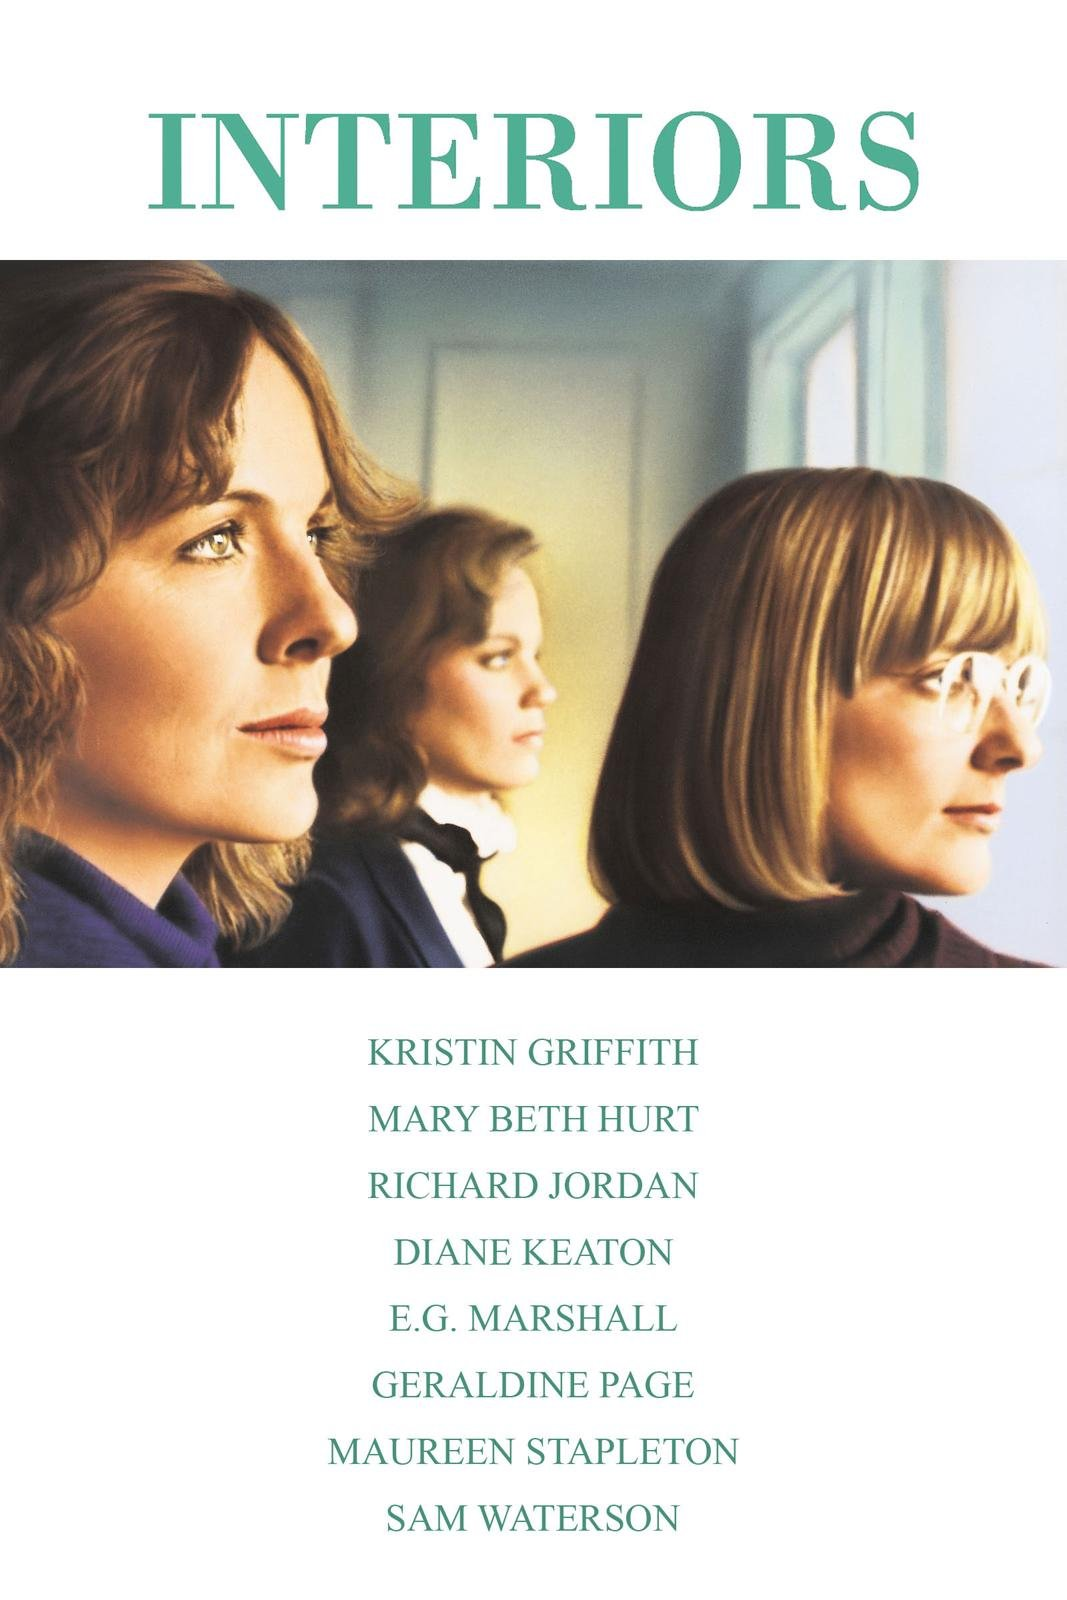 Amazon.com: Interiors: Kristen Griffith, Diane Keaton, E.G. Marshall,  Geraldine Page: Amazon Digital Services LLC